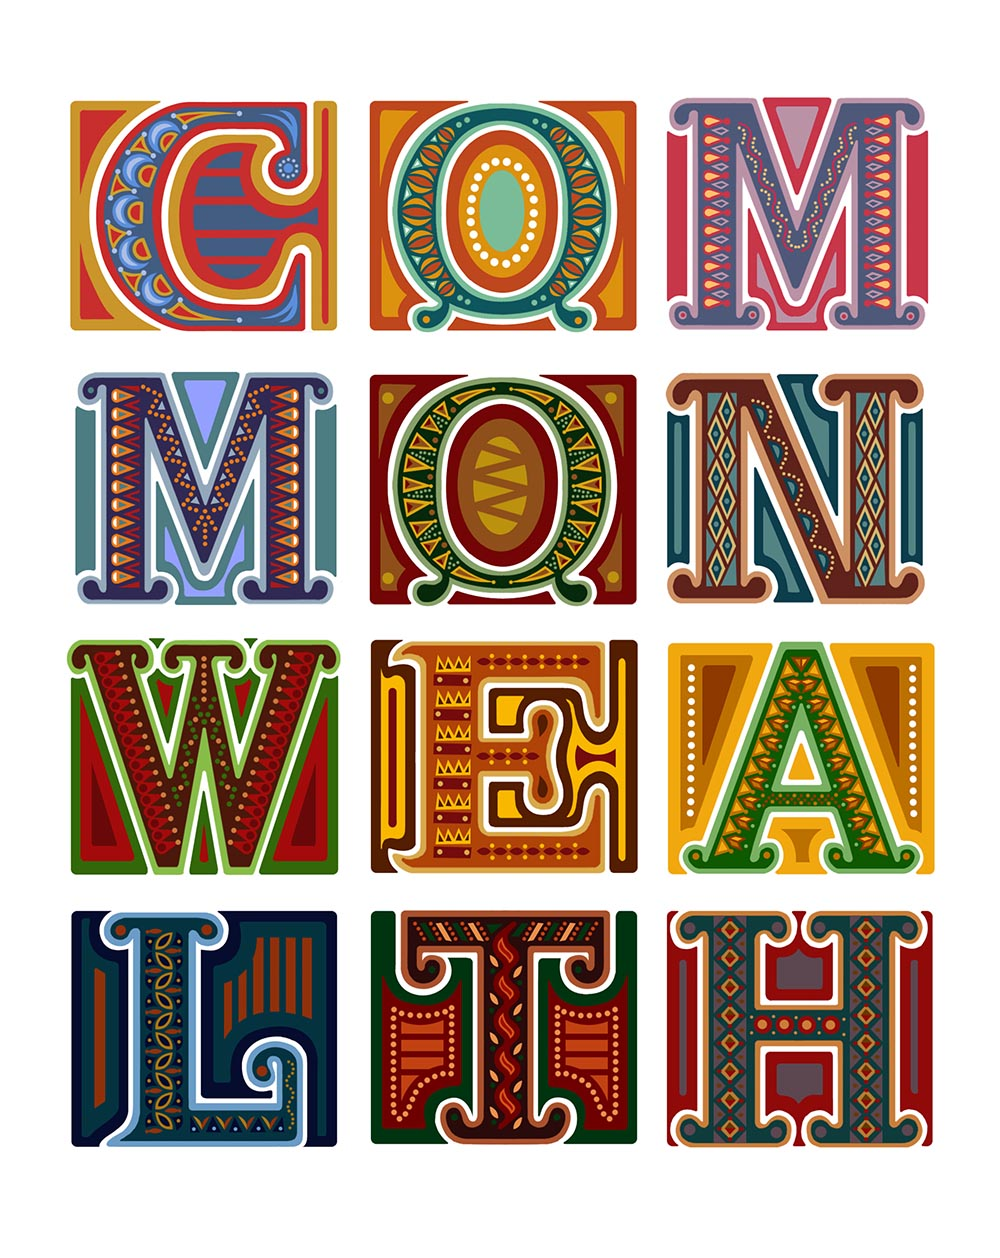 Commonwealth by Poonam Mistry (for The Commonwealth Education Trust for A River Of Sories Vol 2)